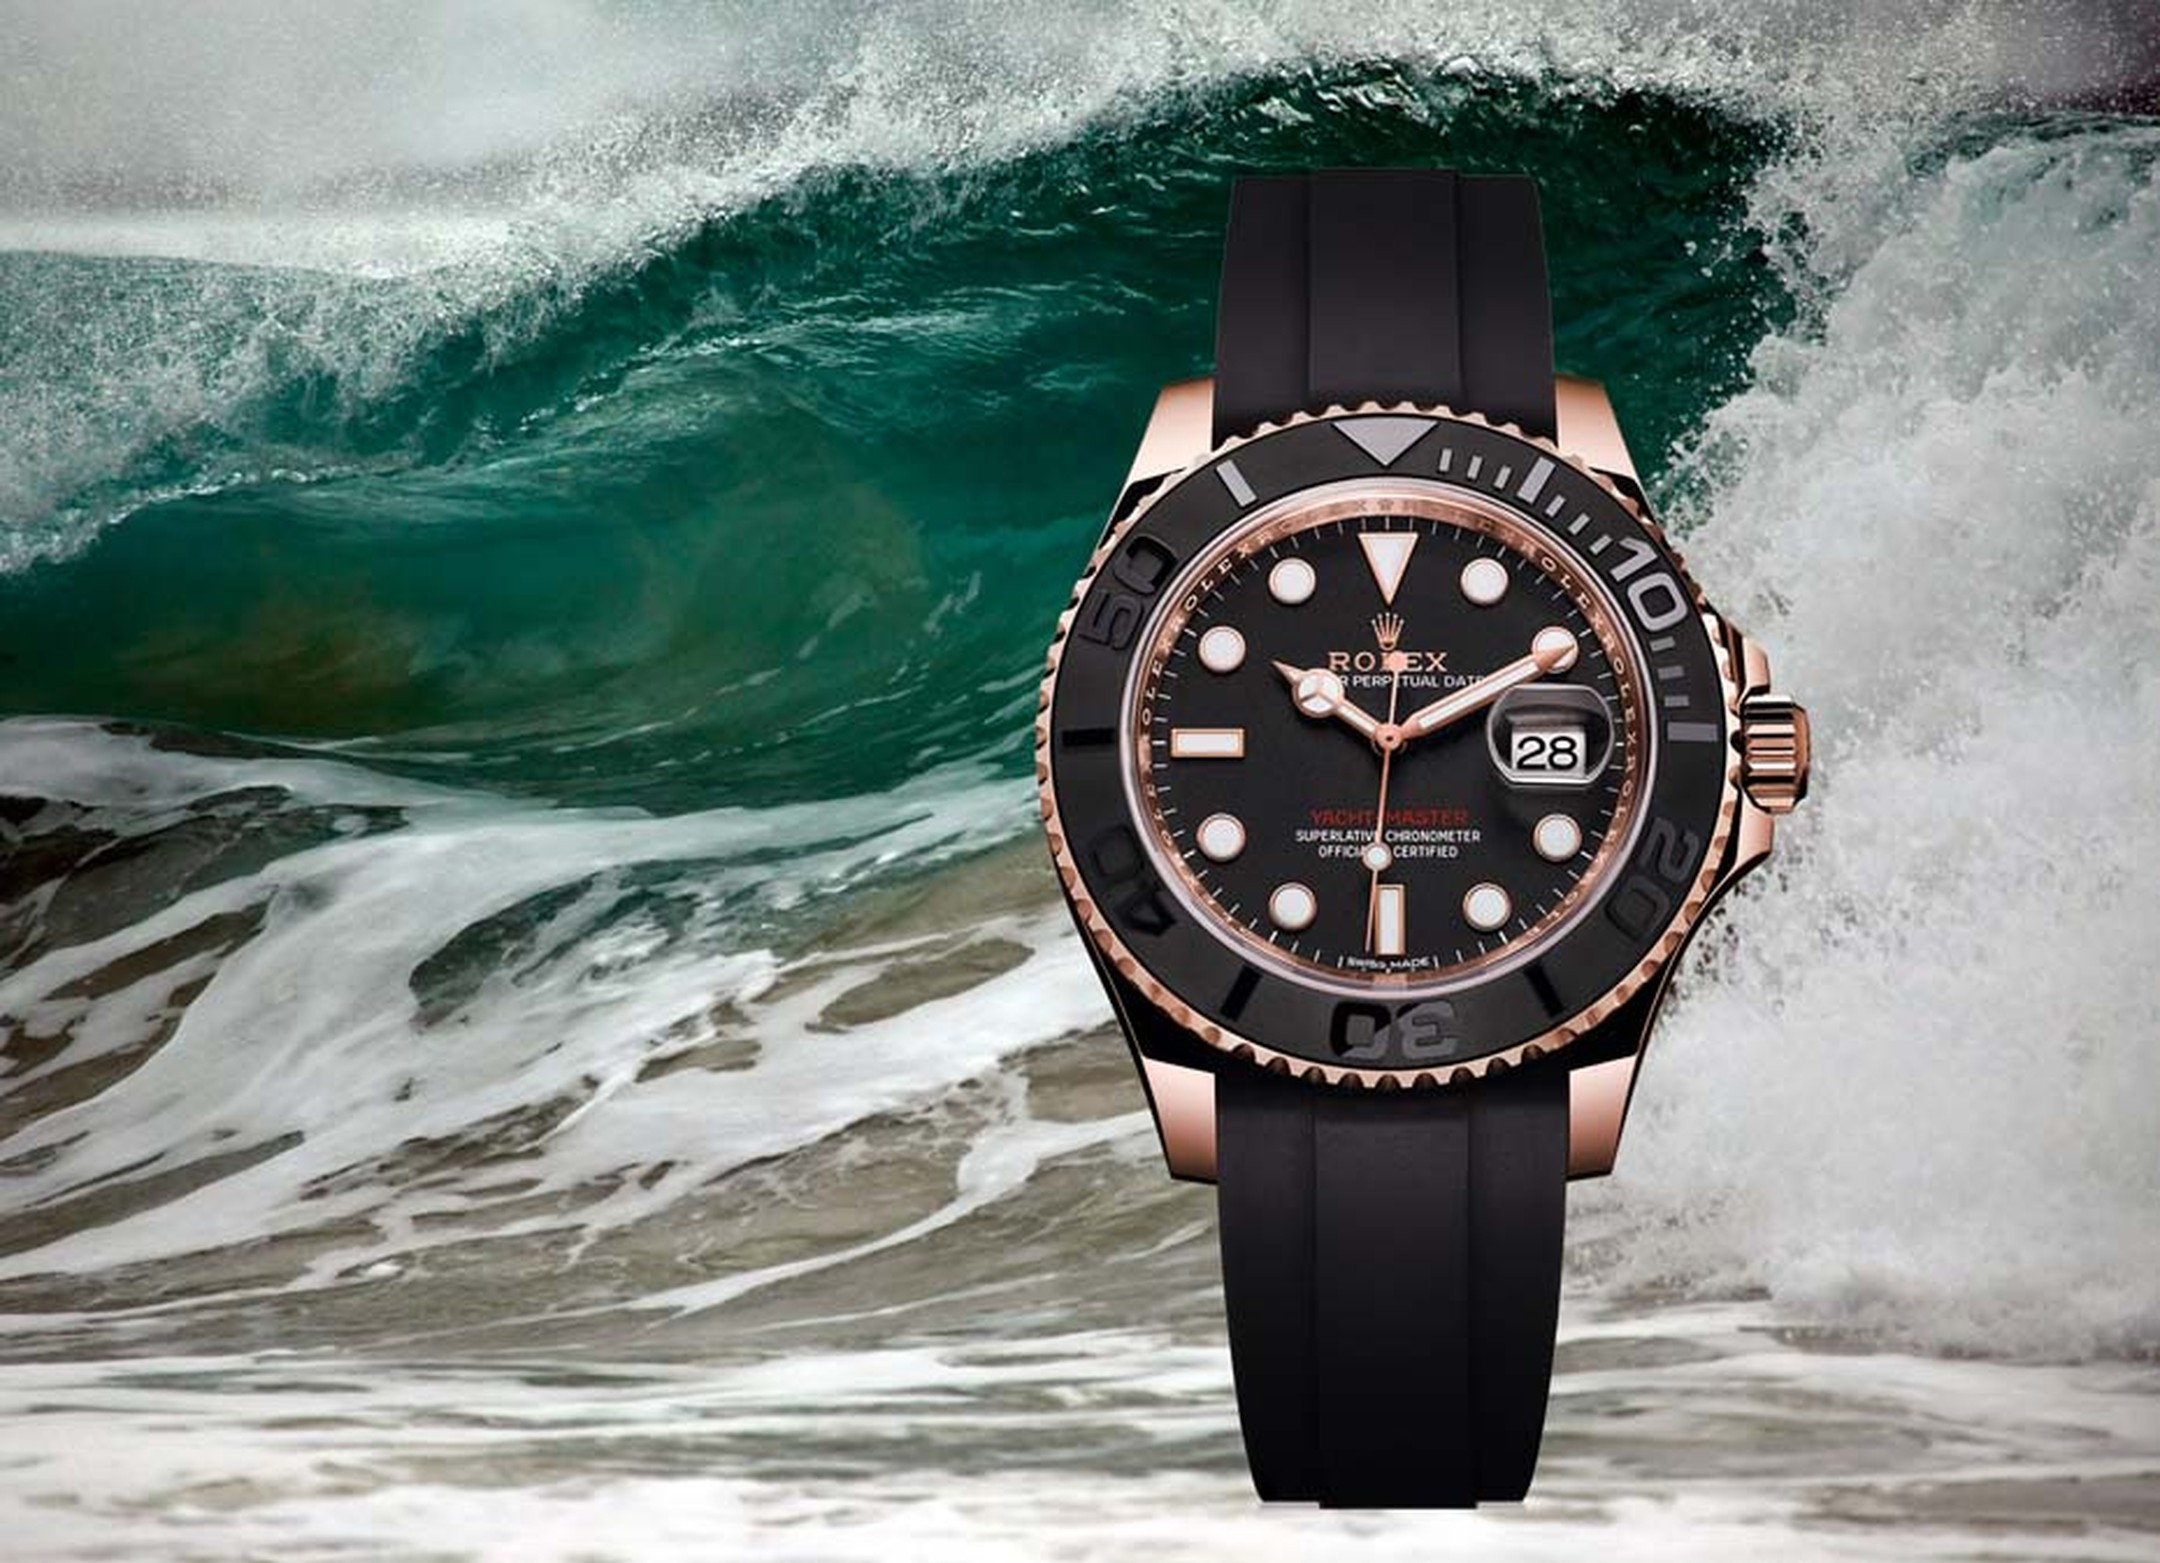 Rolex watches' new Yacht-Master, presented at Baselworld 2015 in an Everose gold case. This is the first time the Yacht-Master has been dressed in black, with the black matte dial, black ceramic bezel and new black Oysterflex bracelet giving this 40mm wat